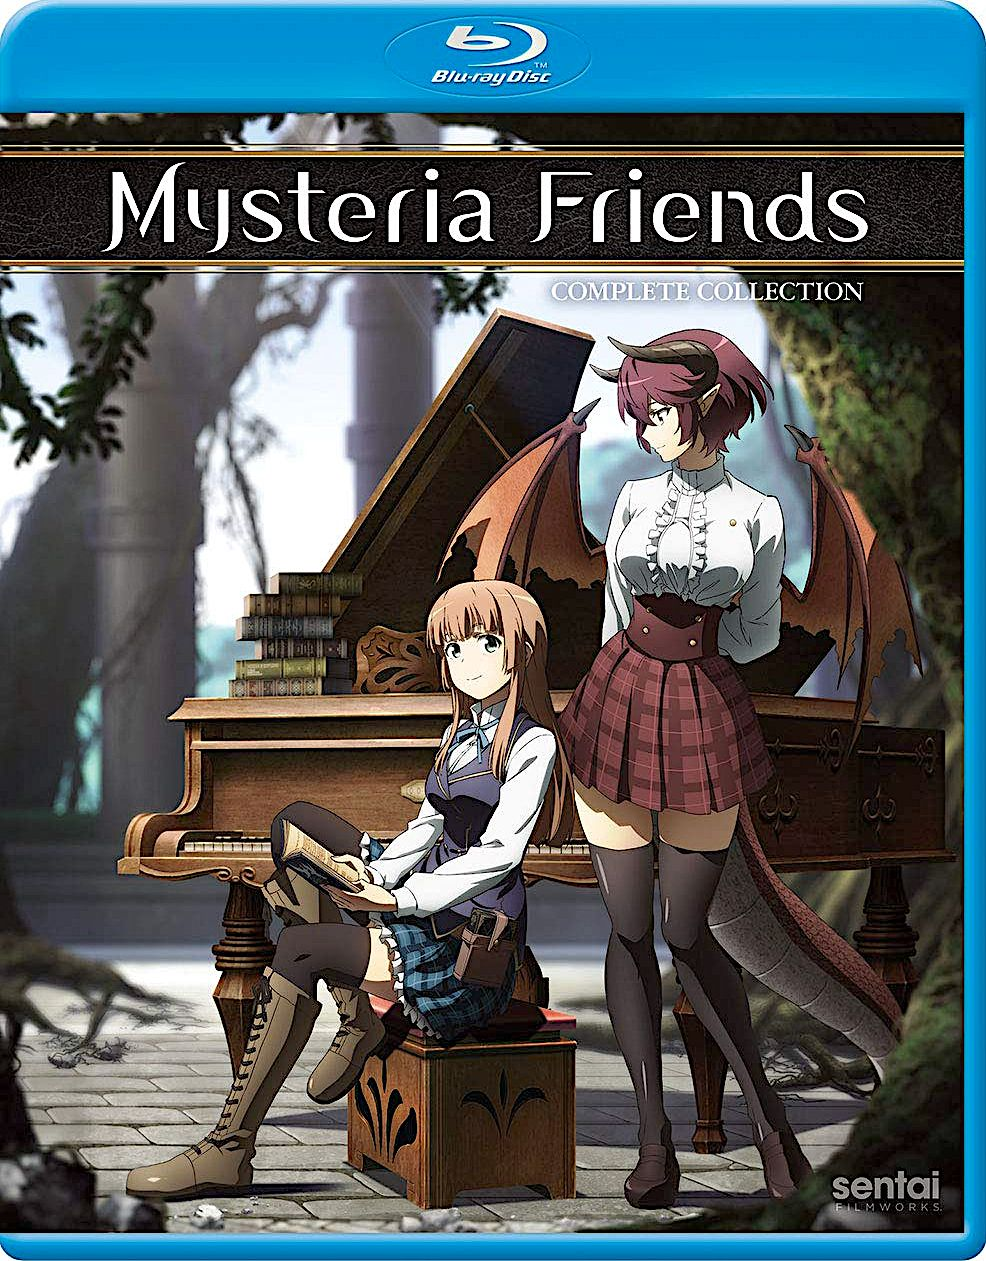 MYSTERIA FRIENDS THE COMPLETE COLLECTION BLURAY SET